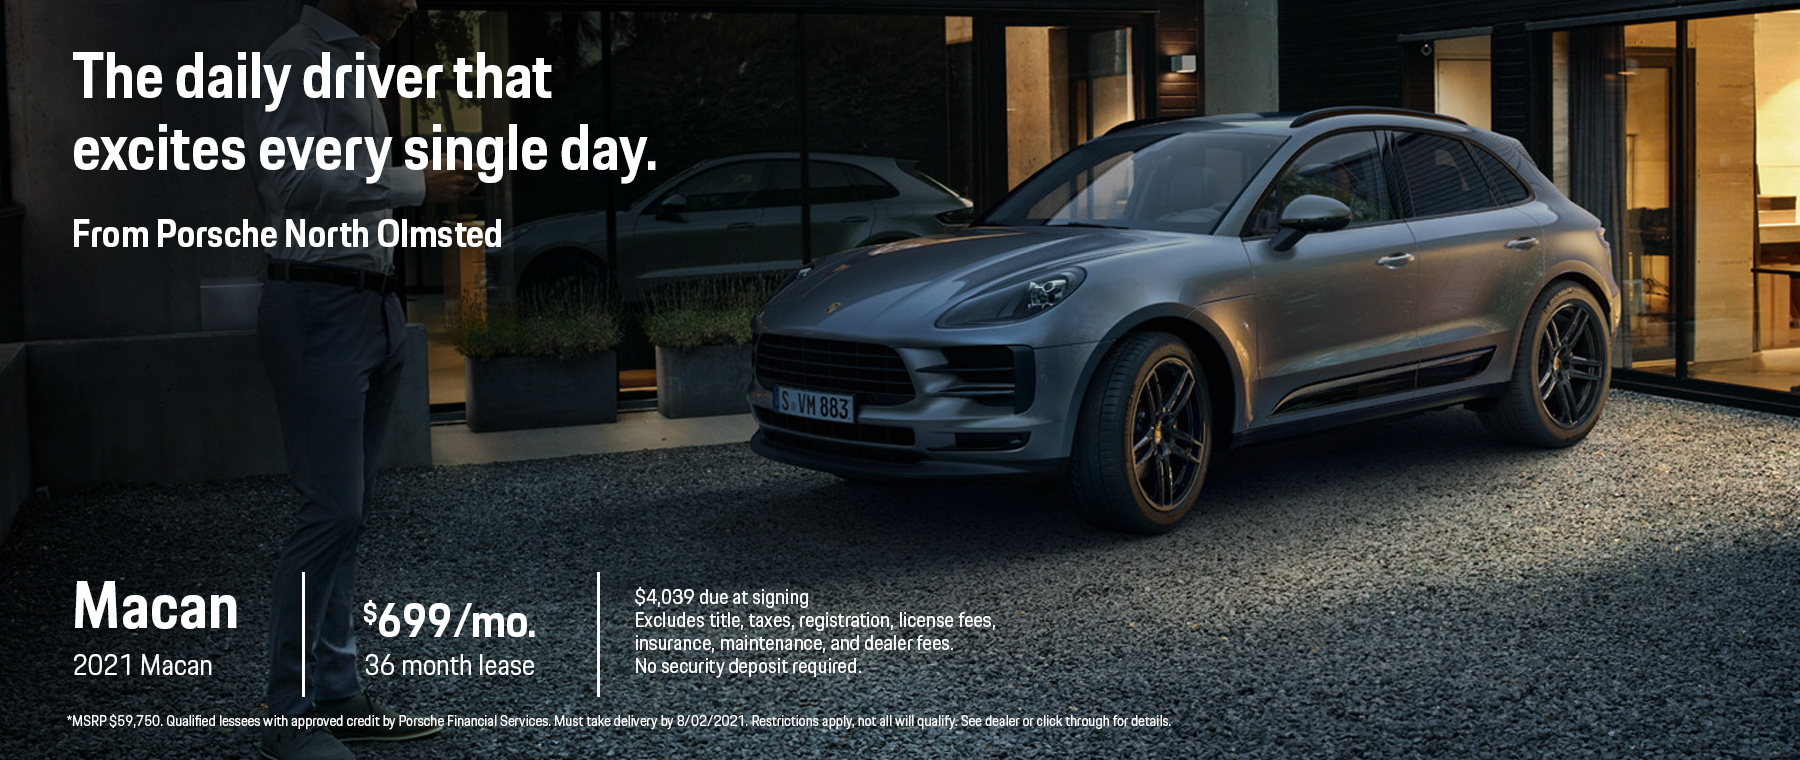 2021 Macan Lease Offer